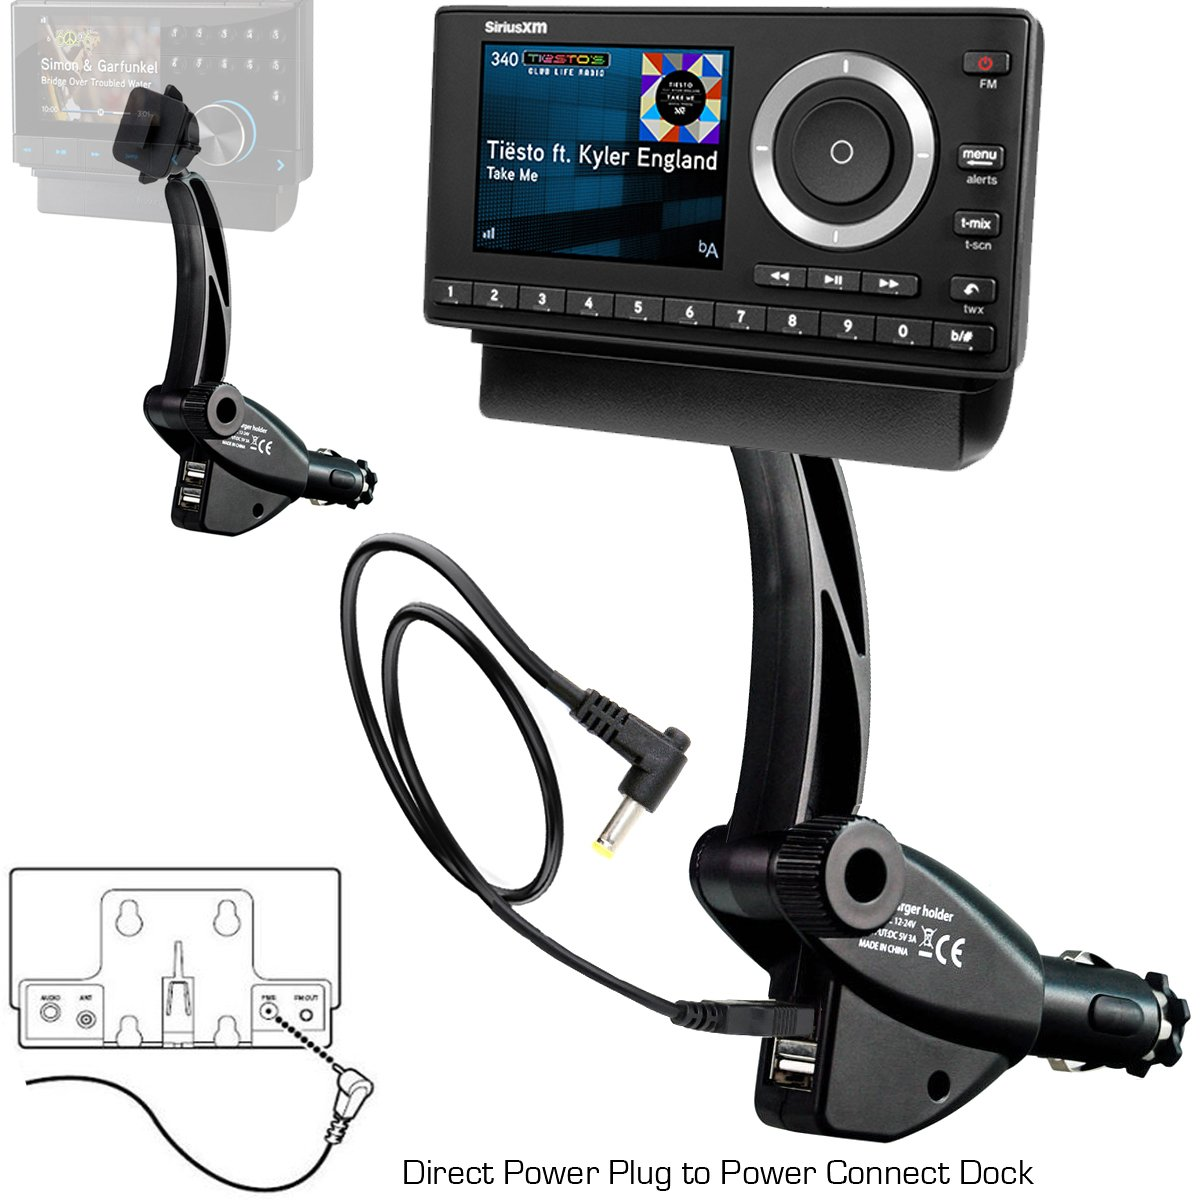 ChargerCity Dual USB Sirius XM Satellite Radio Lighter Socket Car Mount w/Tilt adjust & PowerConnect Power Cable Adapter for Onyx Lynx Edge Plus EZ Stratus Starmate Xpress (VEHICLE DOCK NOT INCLUDED)